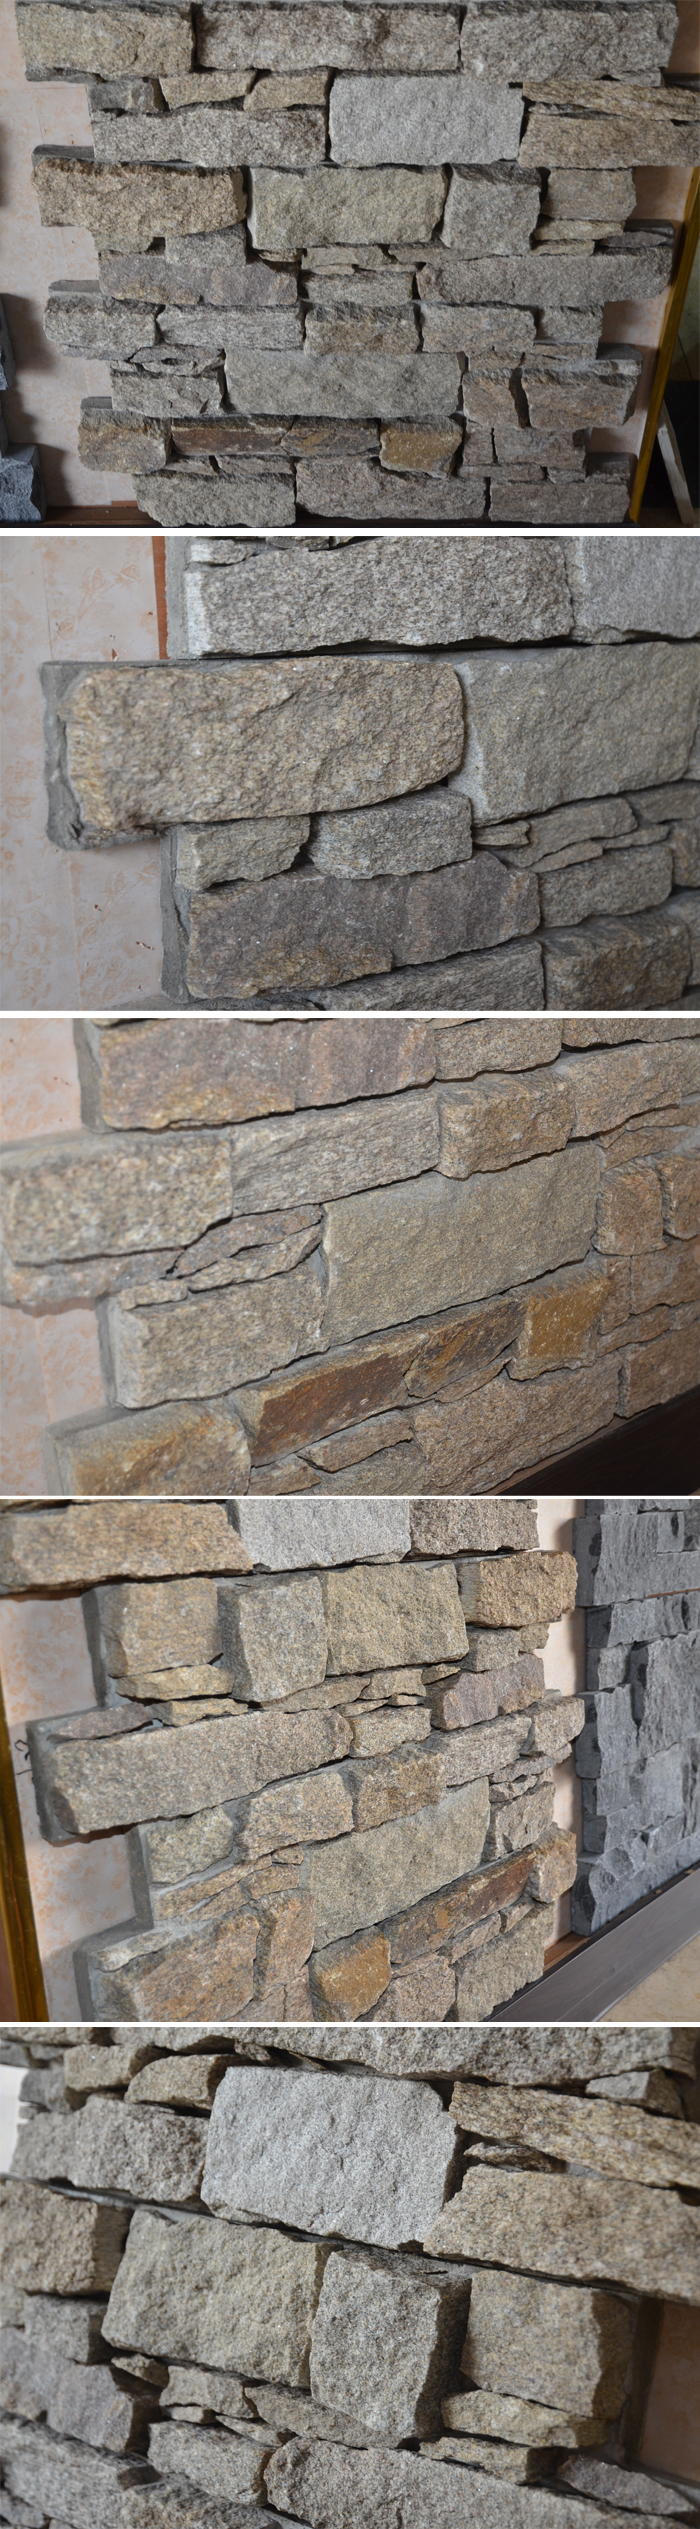 Rusty Slate Rough Outdoor Natural Stone Wall Tile For Wall